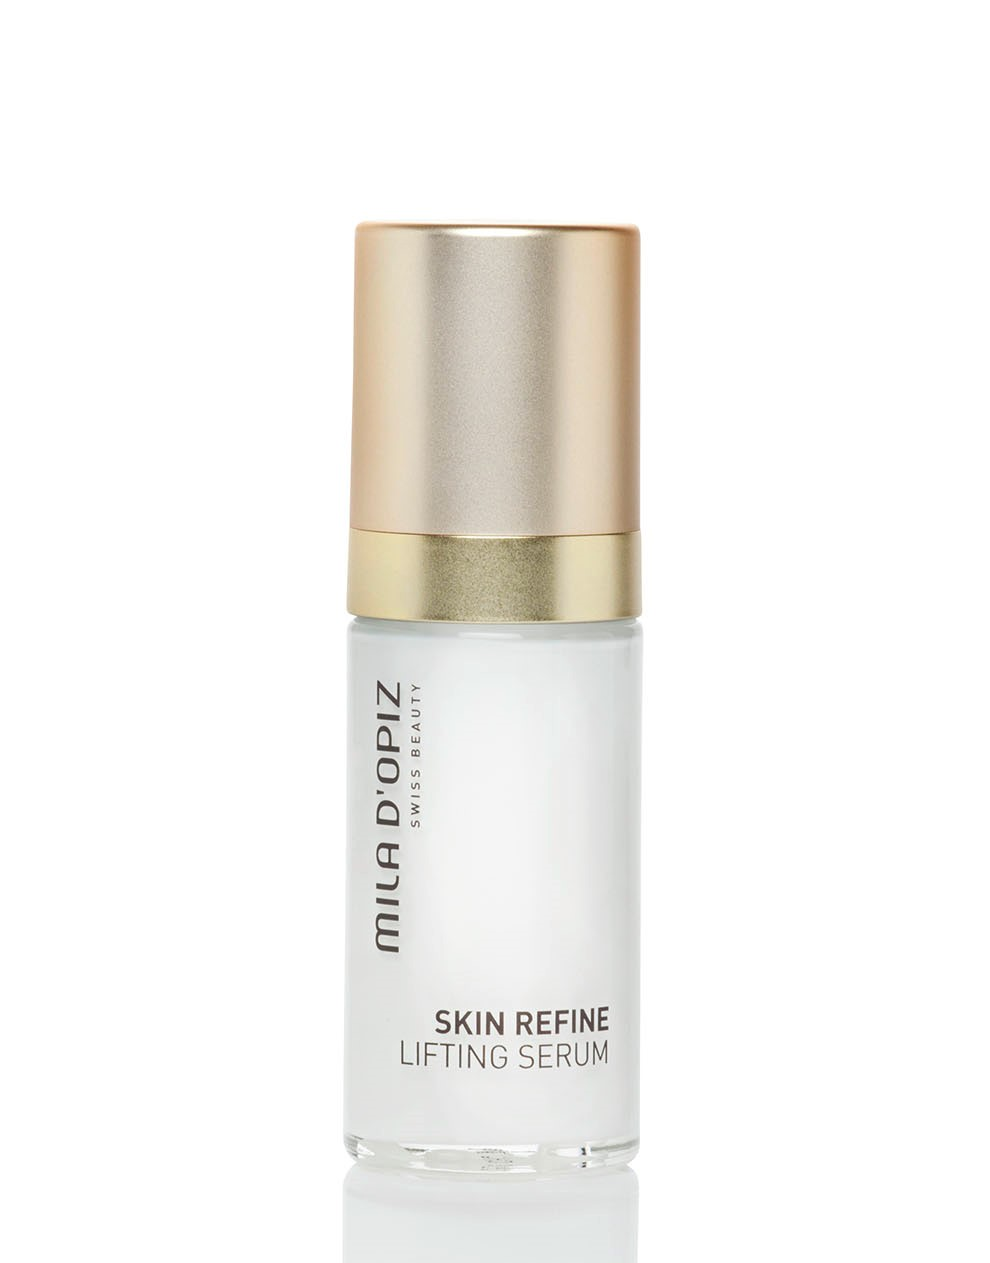 SkinRefine_101257_Lifting_Serum_30ml.jpg